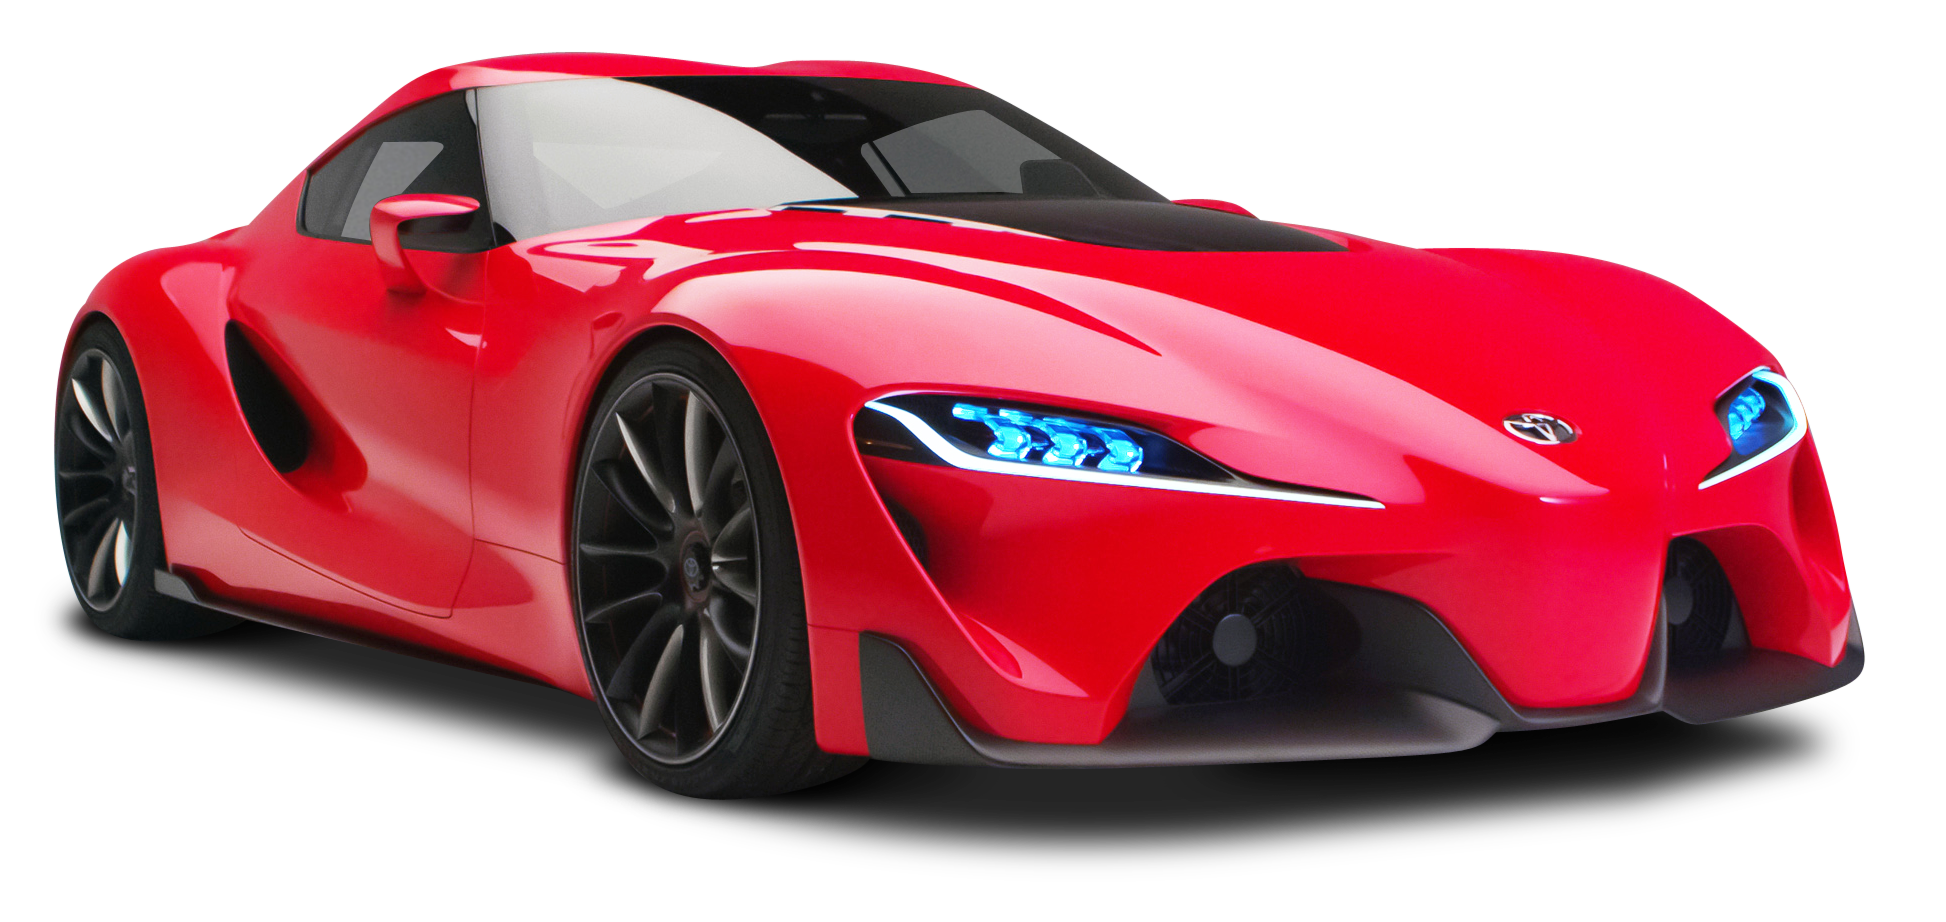 Red sports car png. Toyota ft image purepng